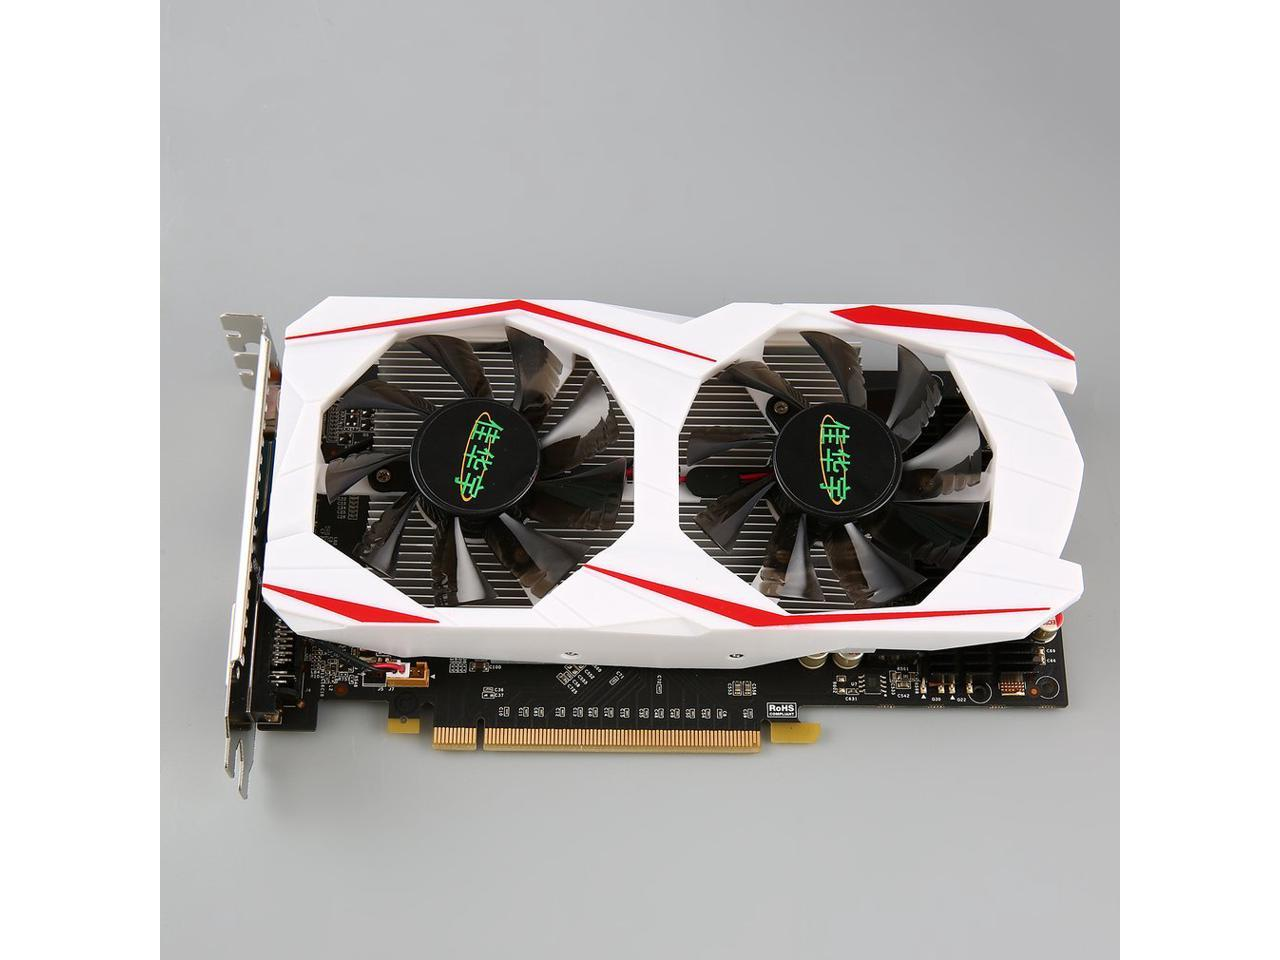 Wanting to buy this 750ti for a dell optiplex 1070 sff